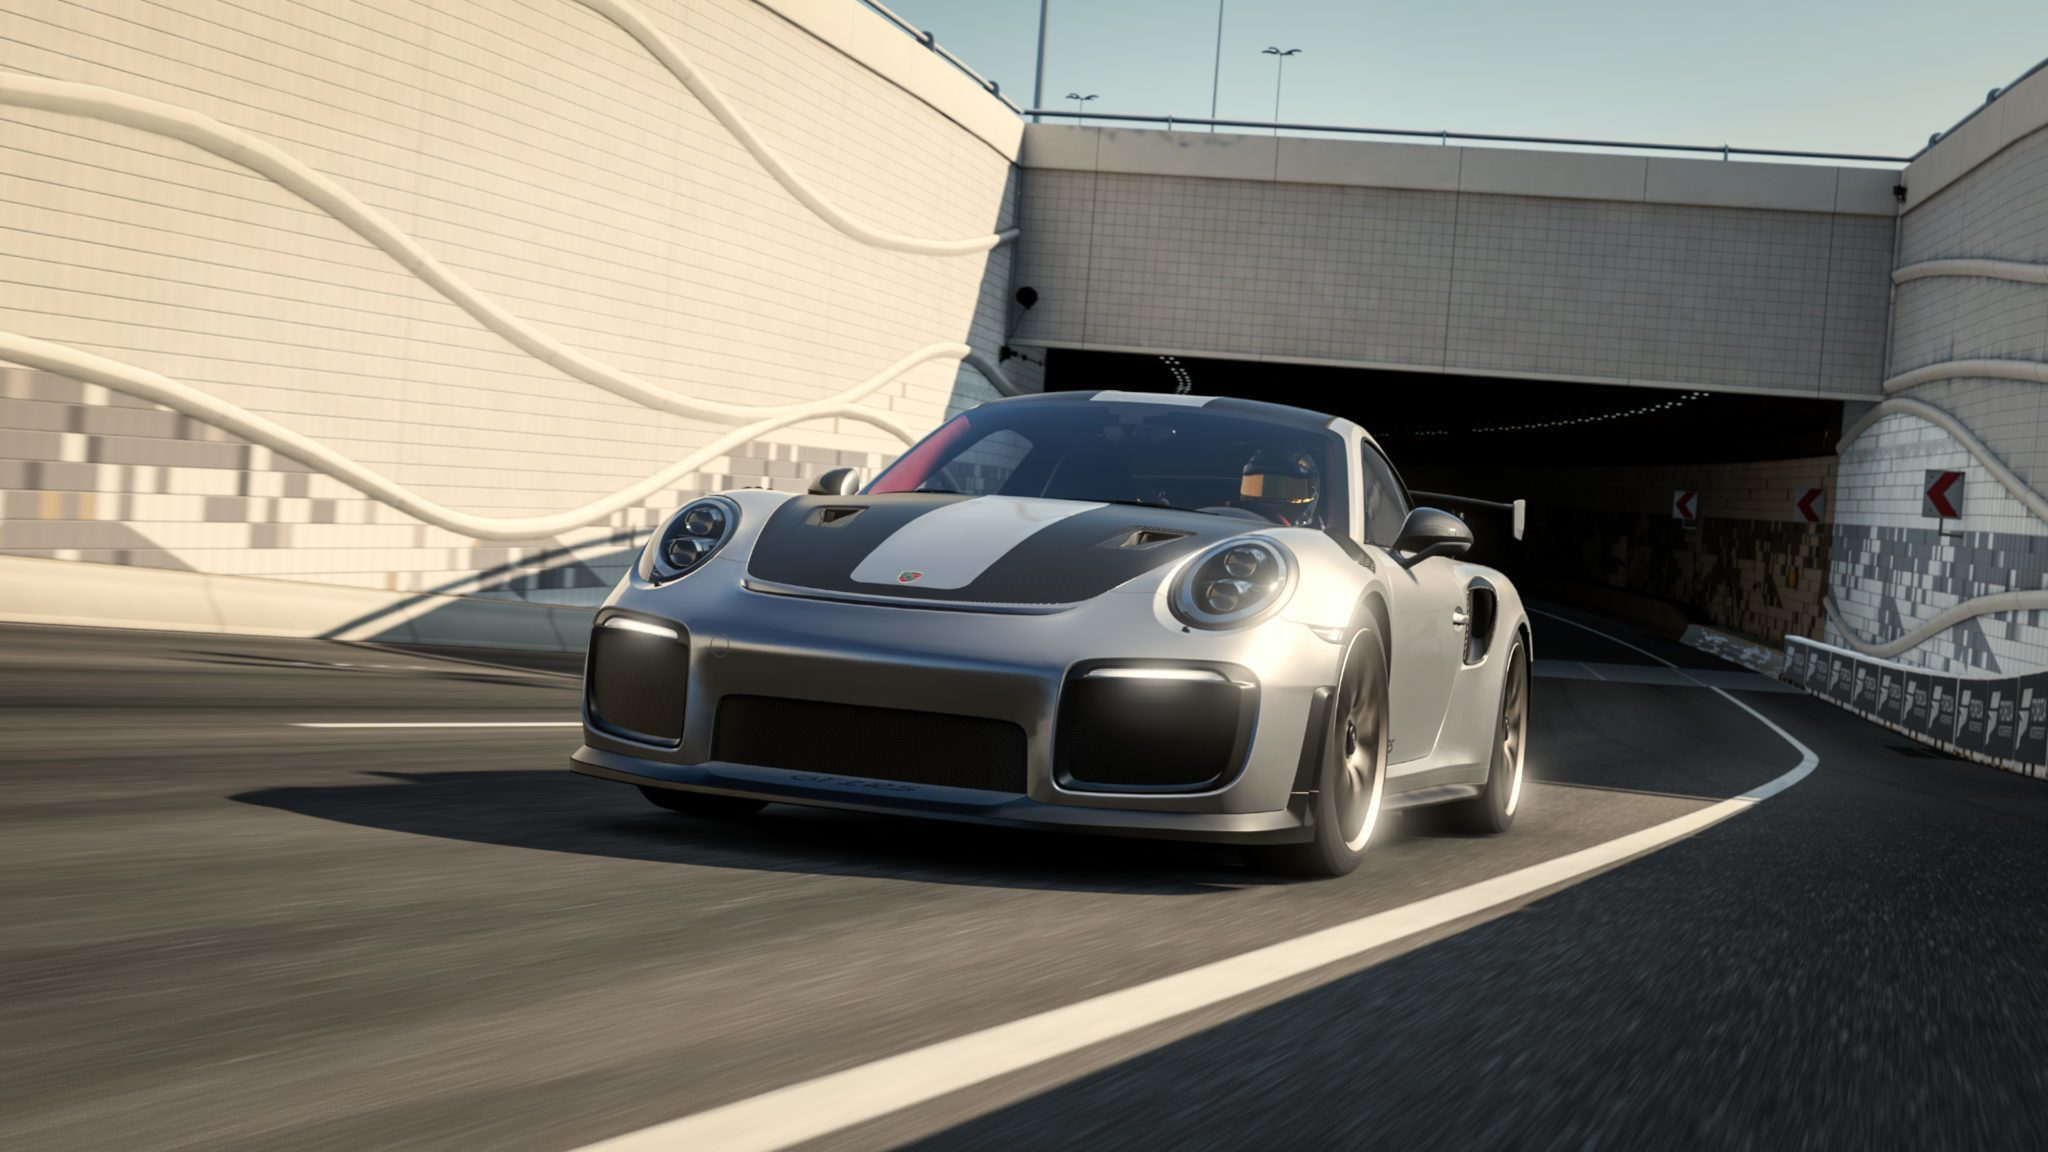 Forza-Motorsport-7-Porsche-GT2-RS-4K-Front Interesting Porsche 911 Gt2 and Gt3 Cars Trend